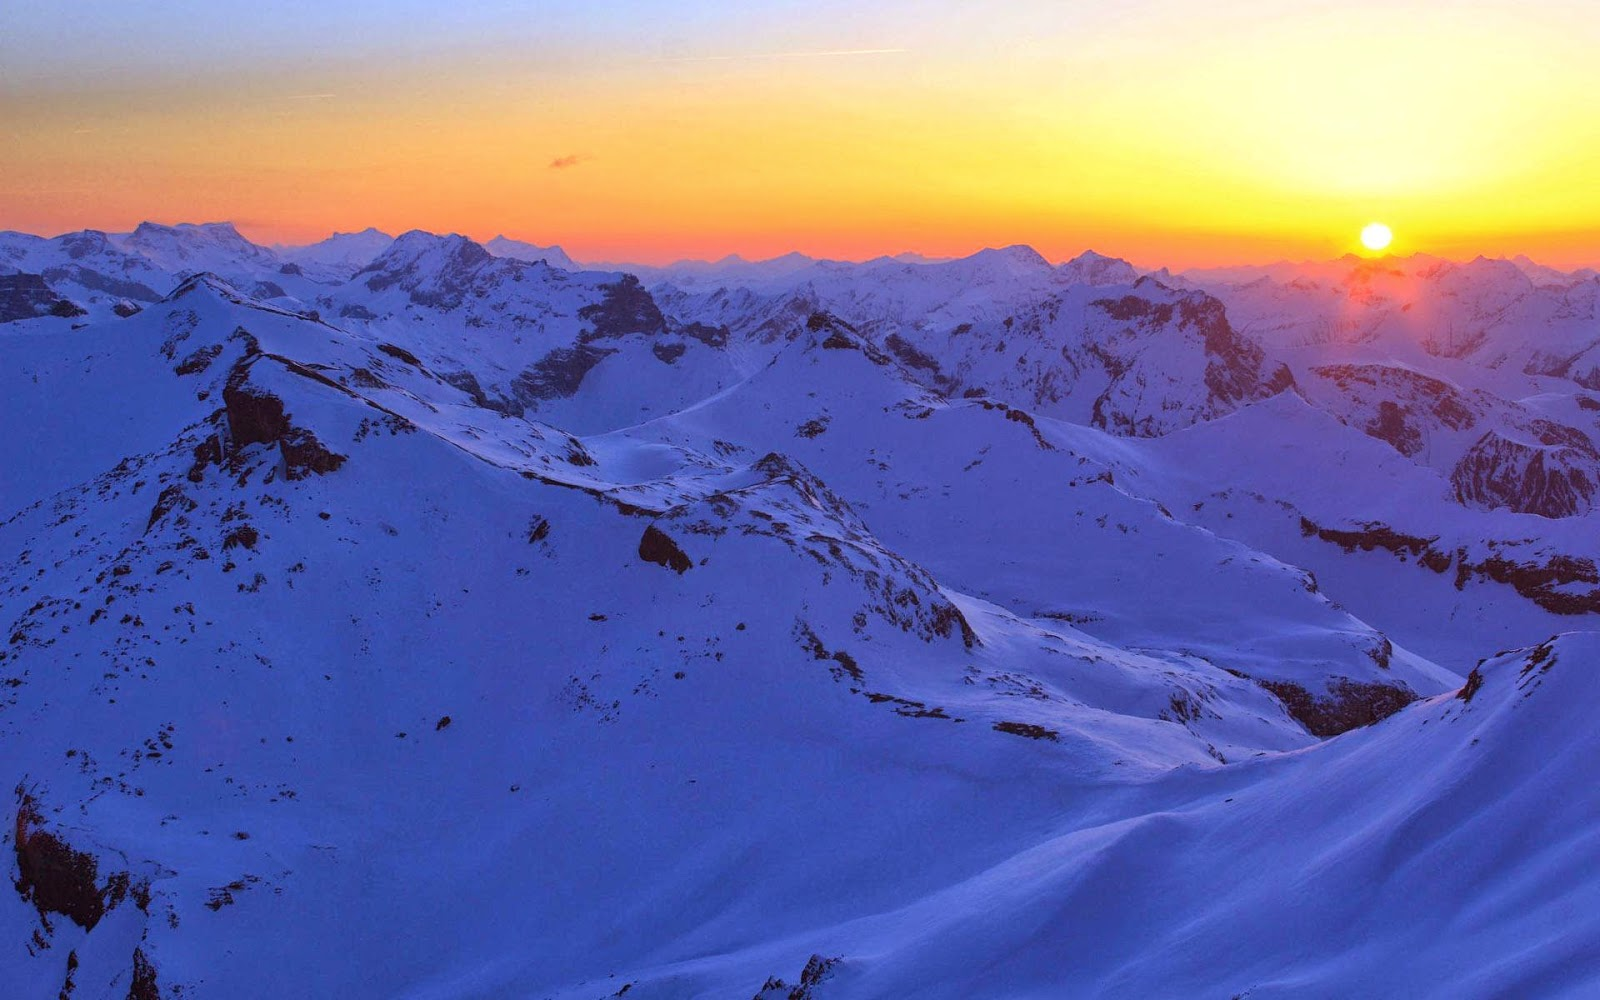 sunset-over-snowy-mountains-beautiful-nature-images-wallpapers